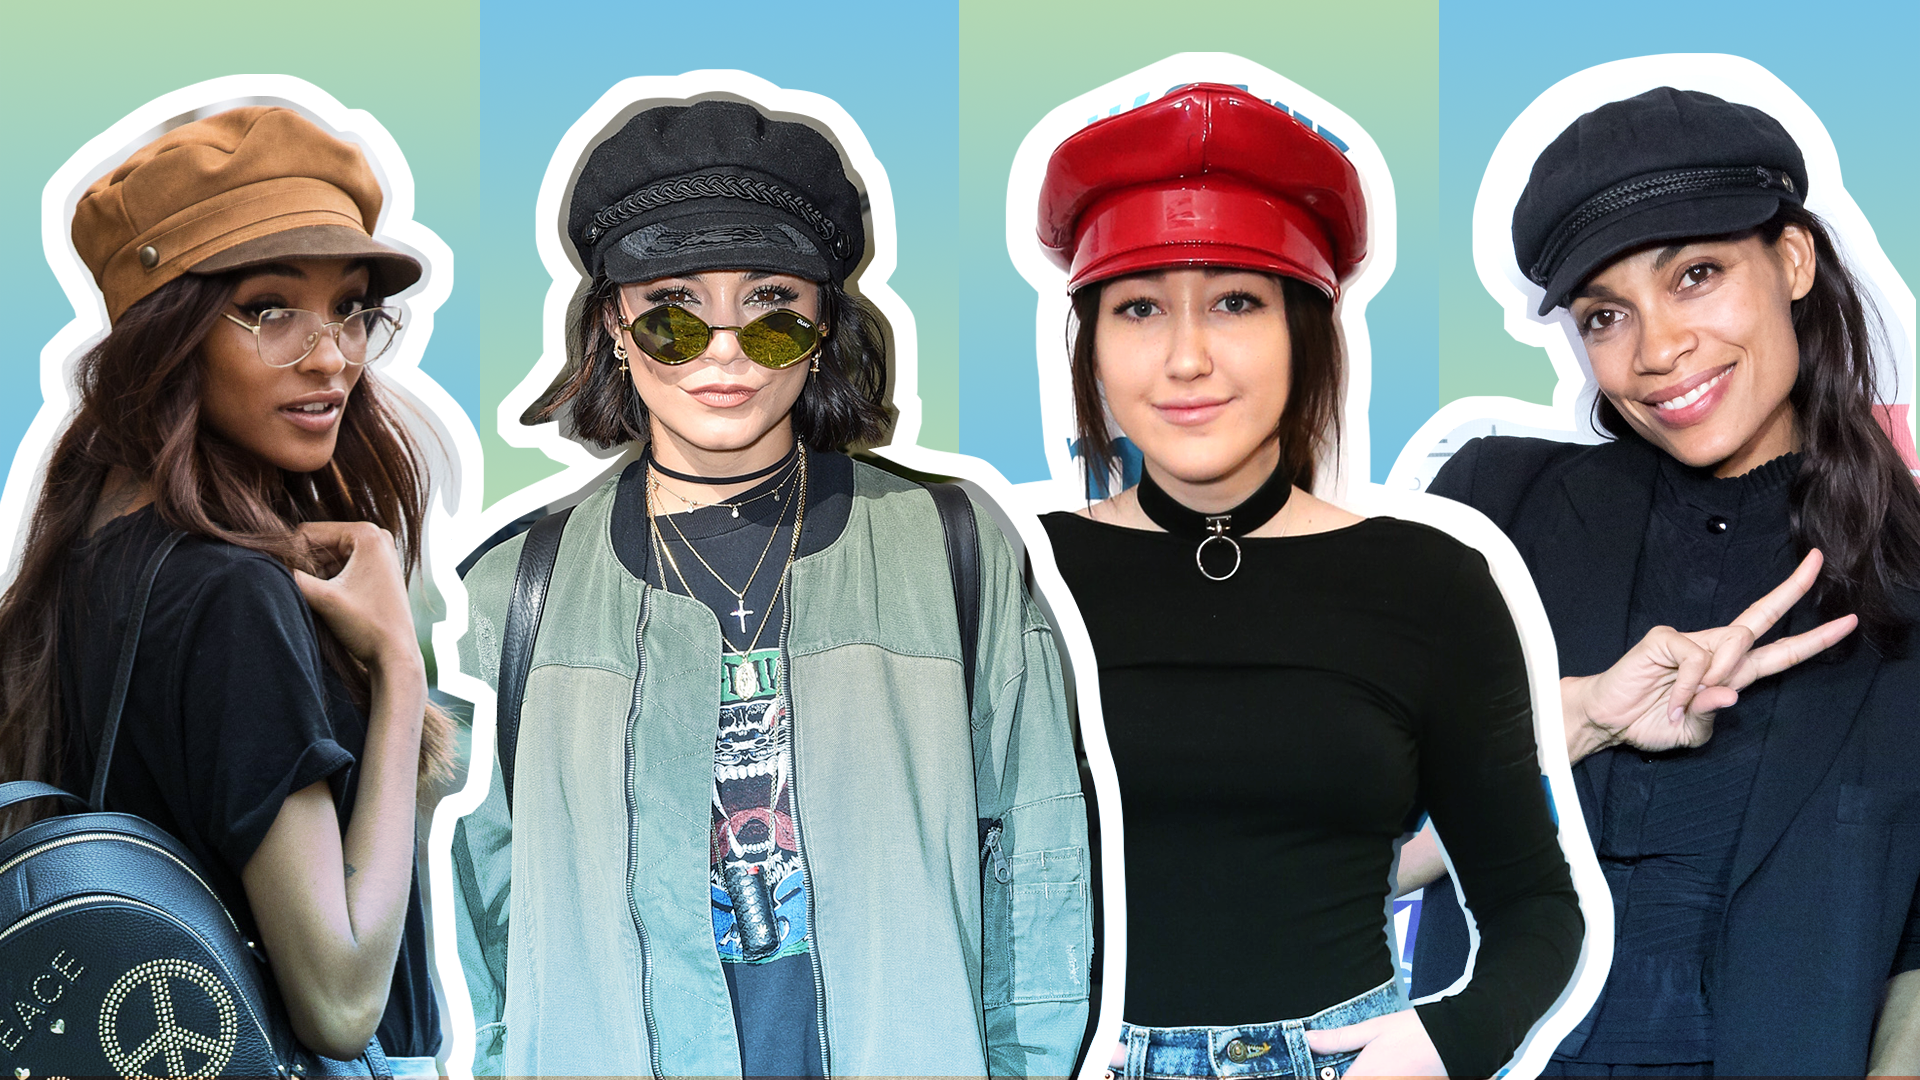 24 Times Celebrities Showed Us How to Pull Off Baker Boy Hats